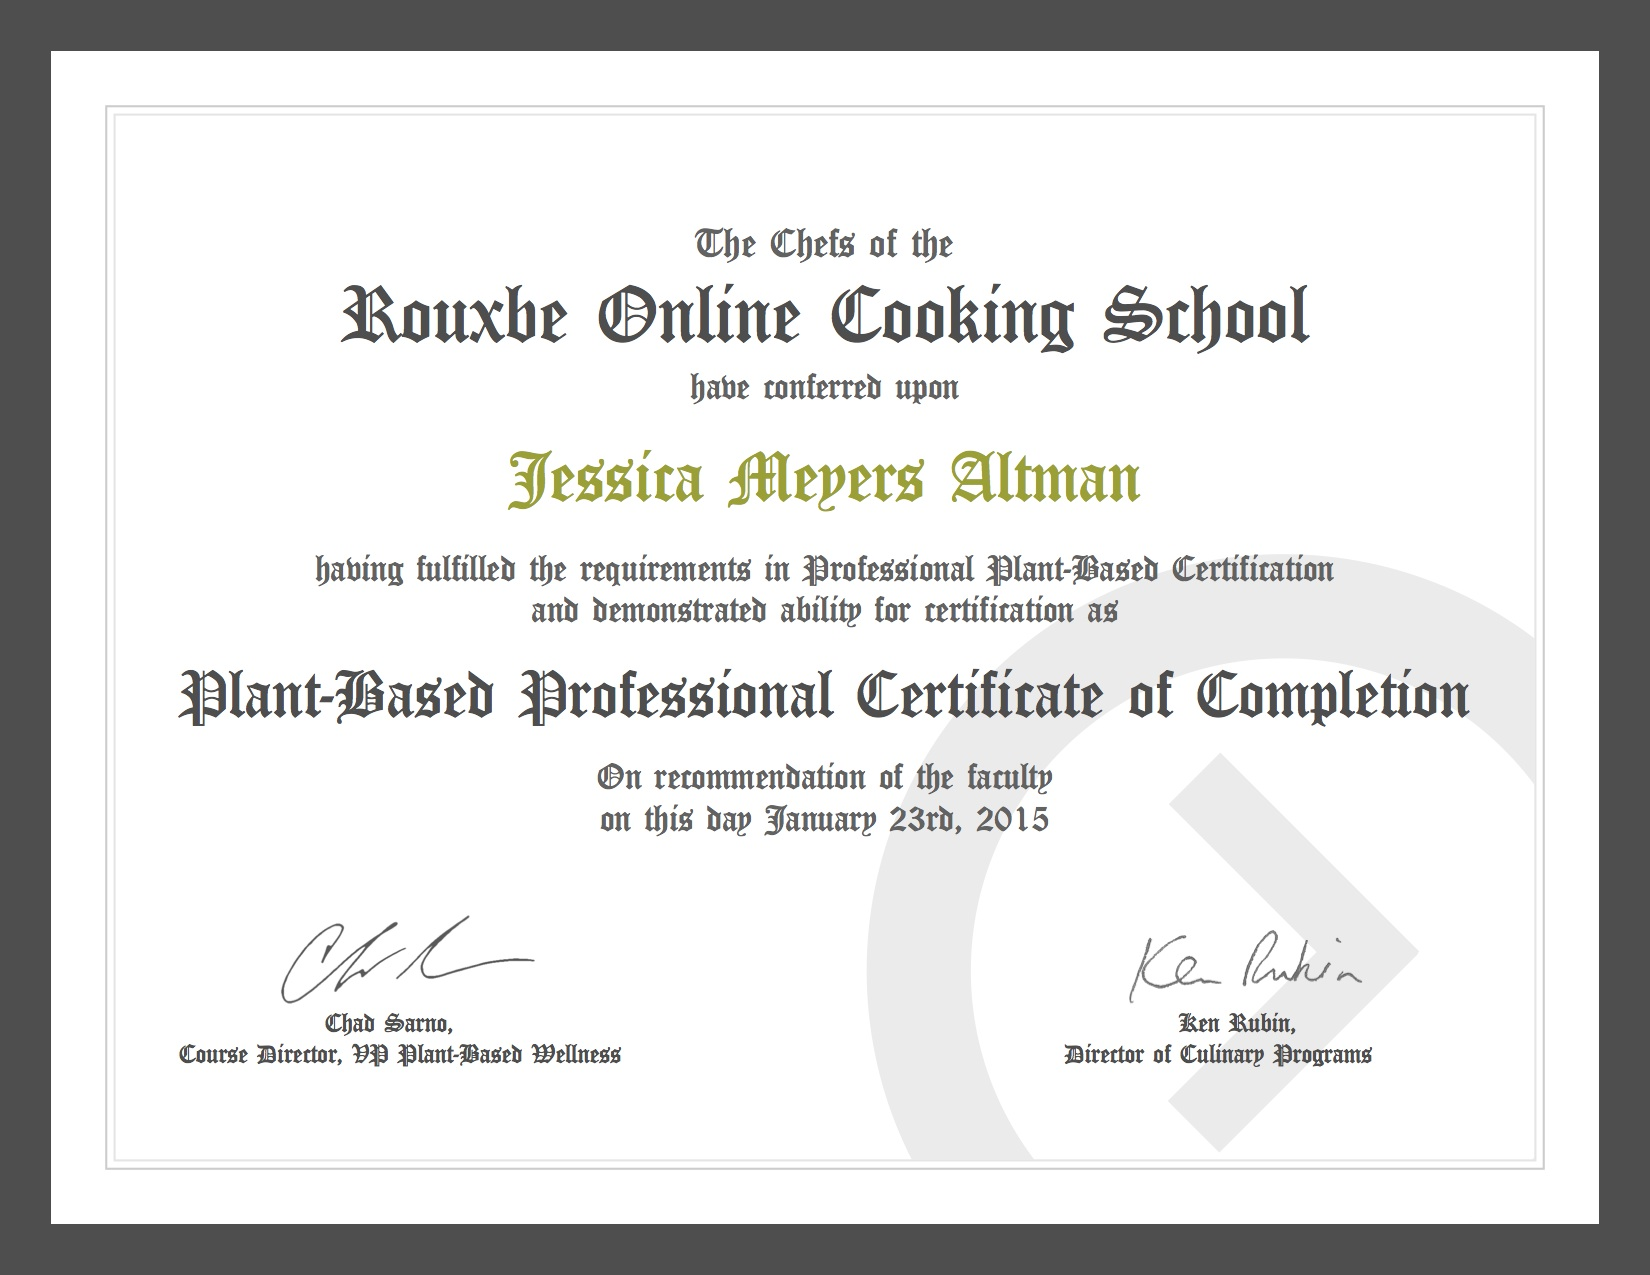 Plant-Based Professional Culinary Certificate From Rouxbe Cooking School